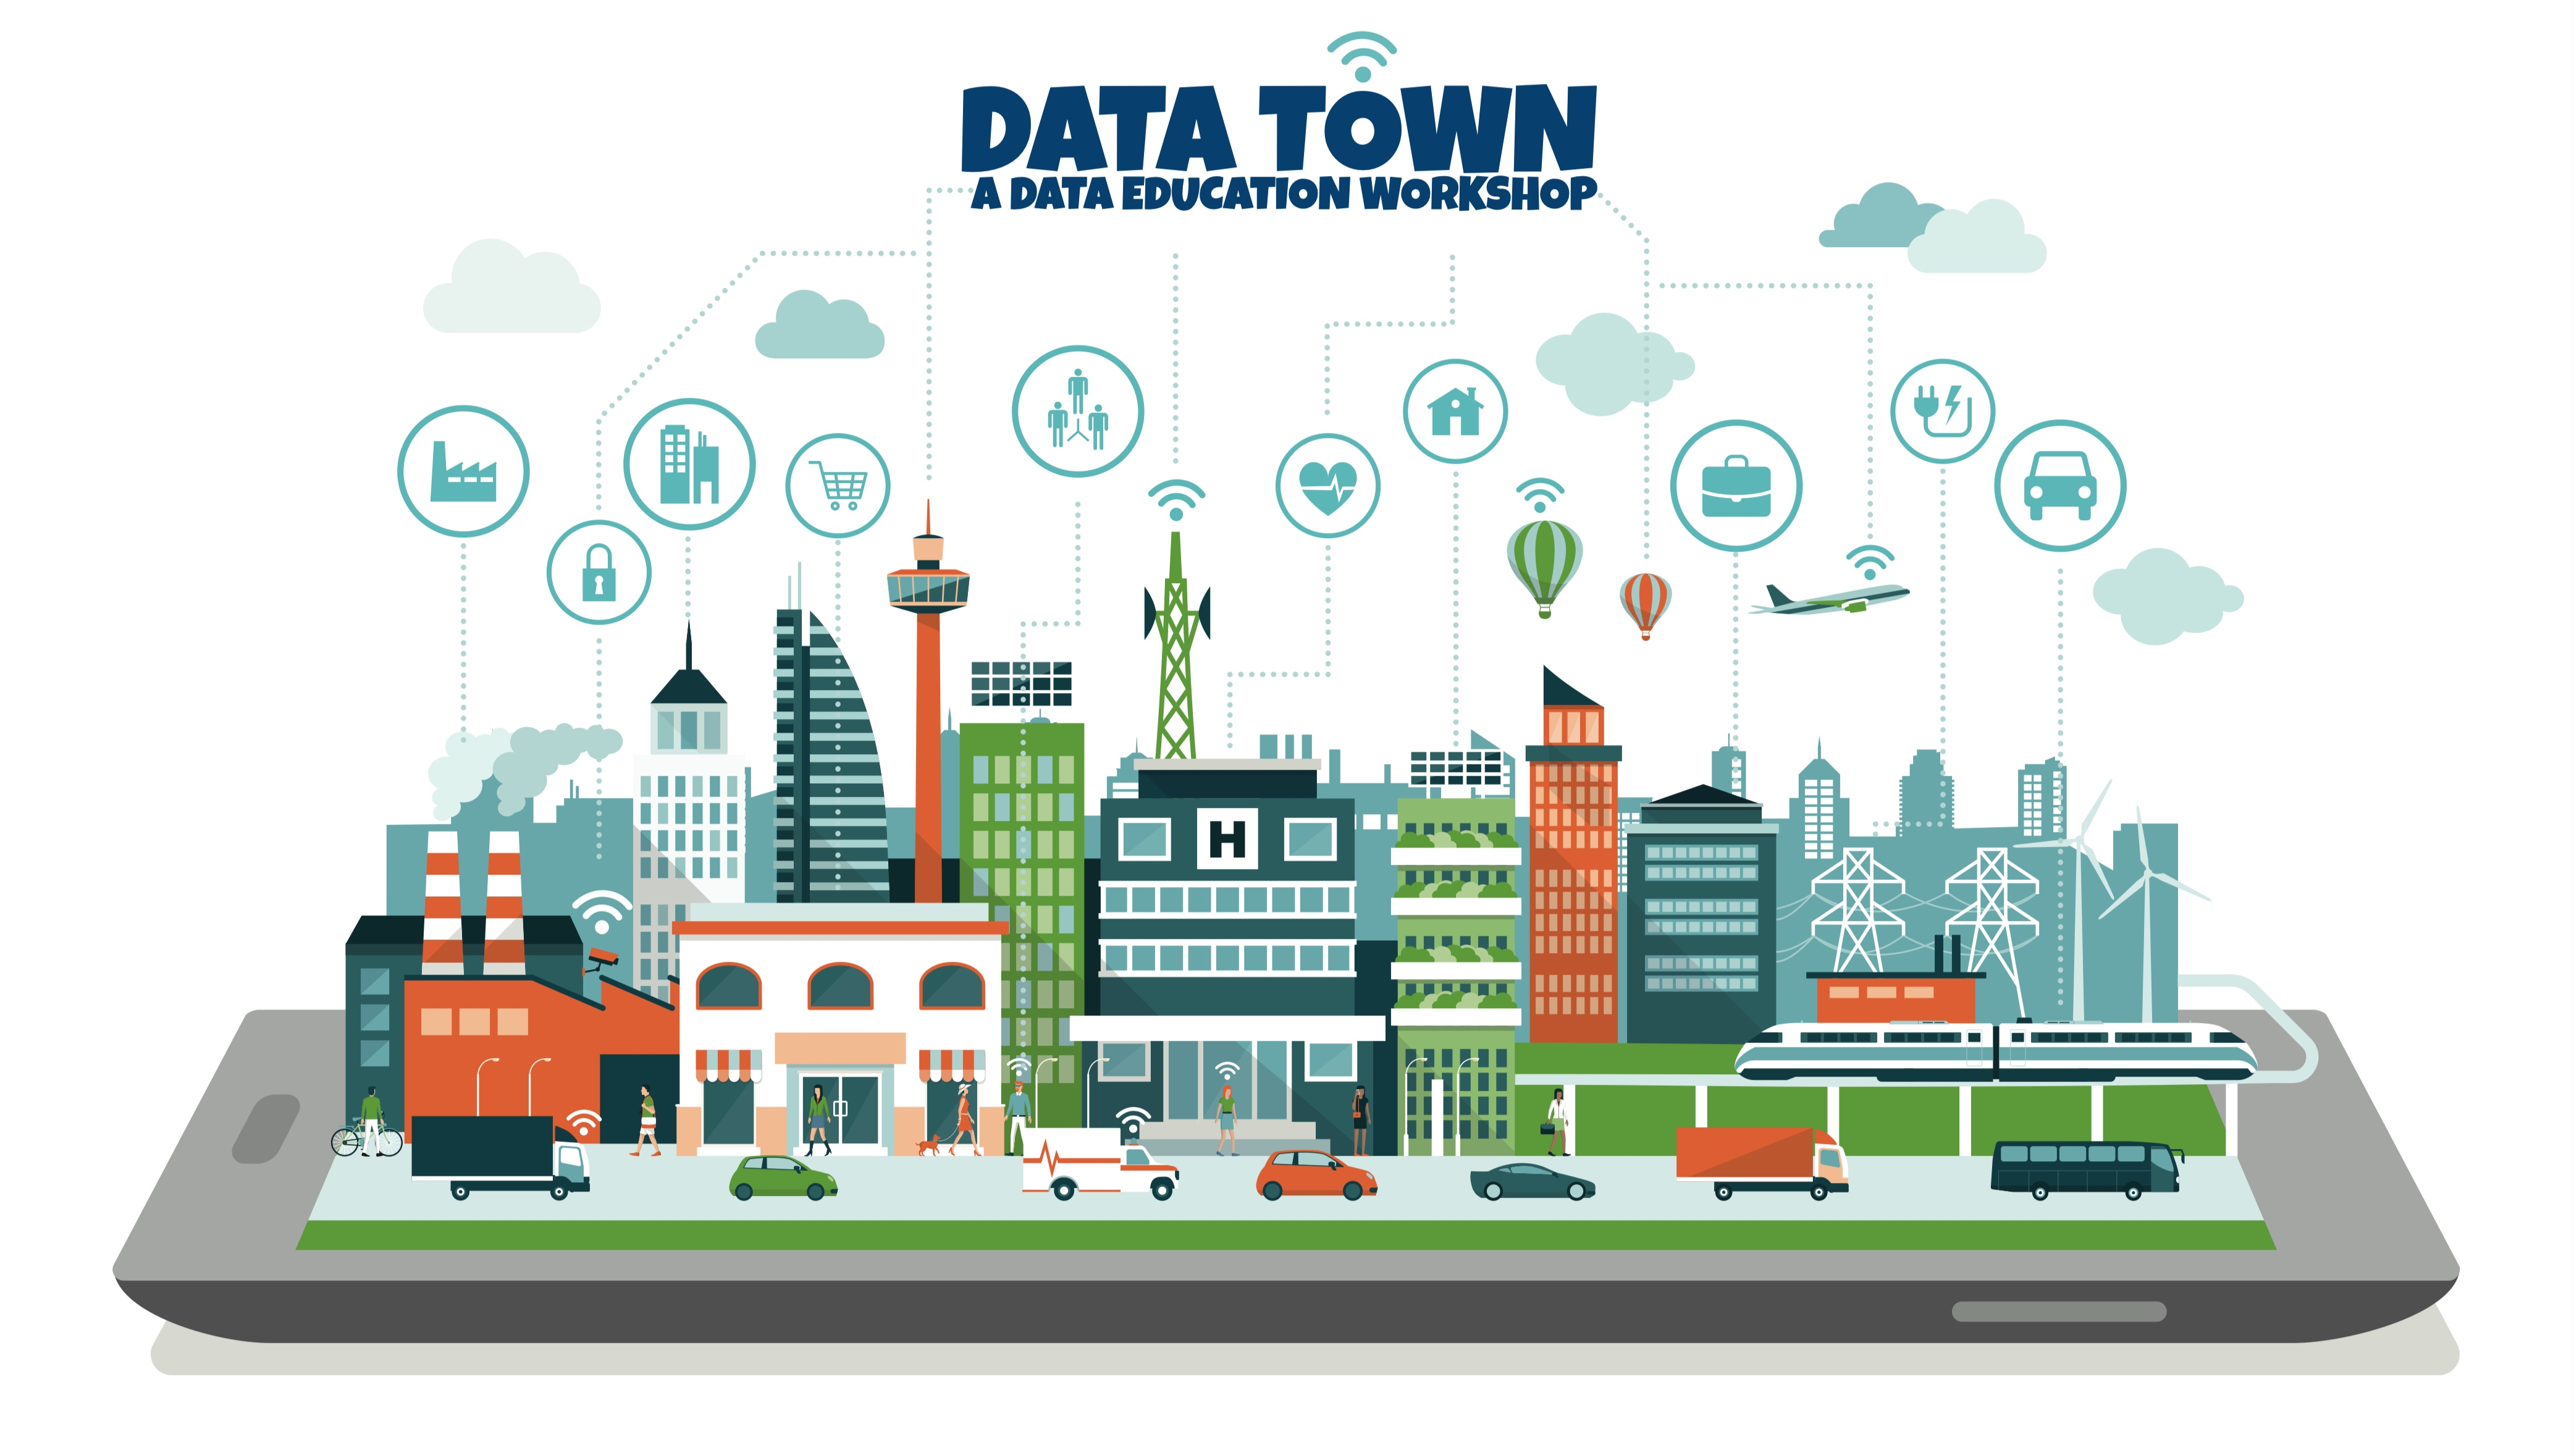 Data Town image